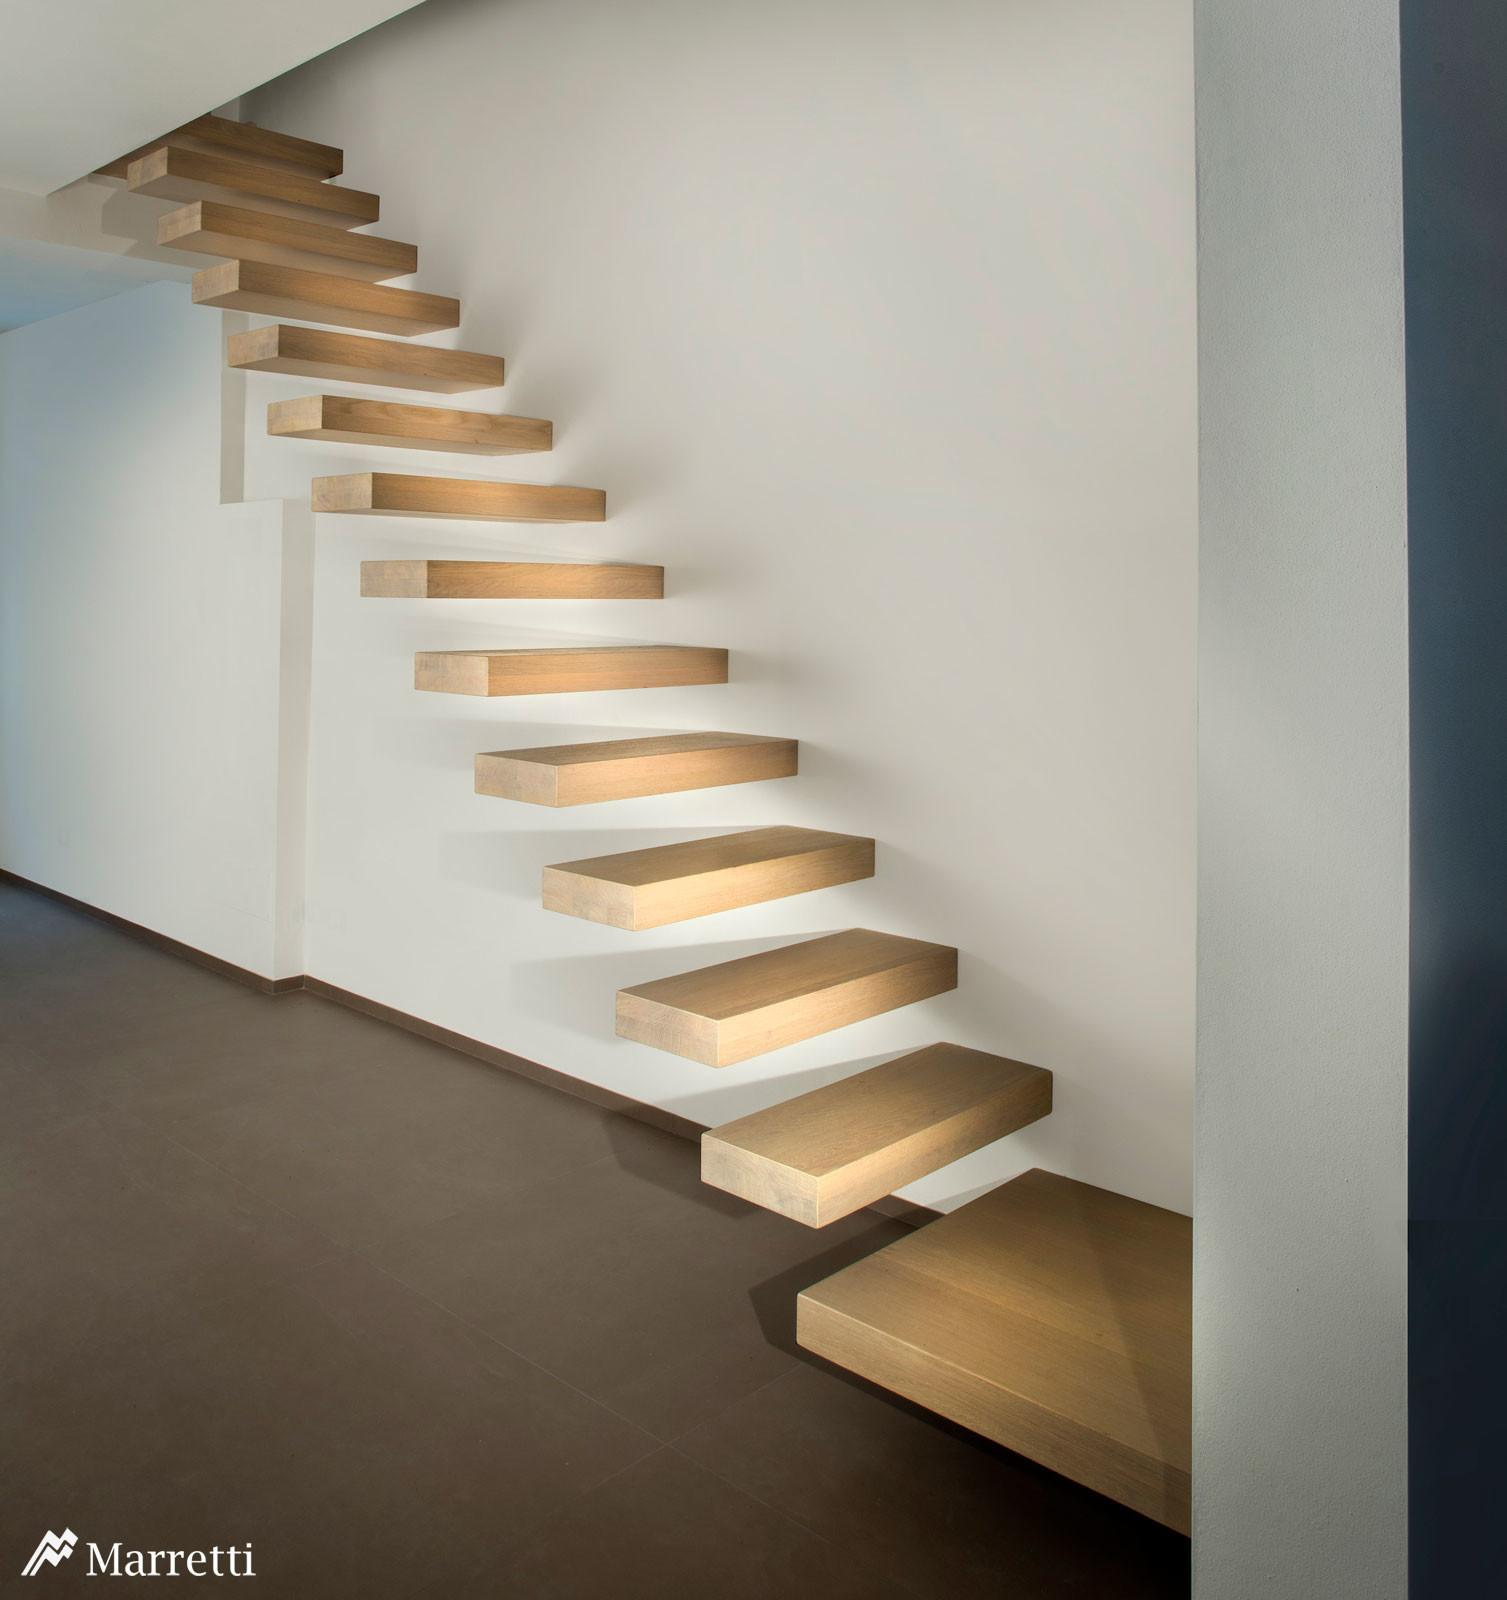 Marretti Srl Hanging Staircases Cloud Internal